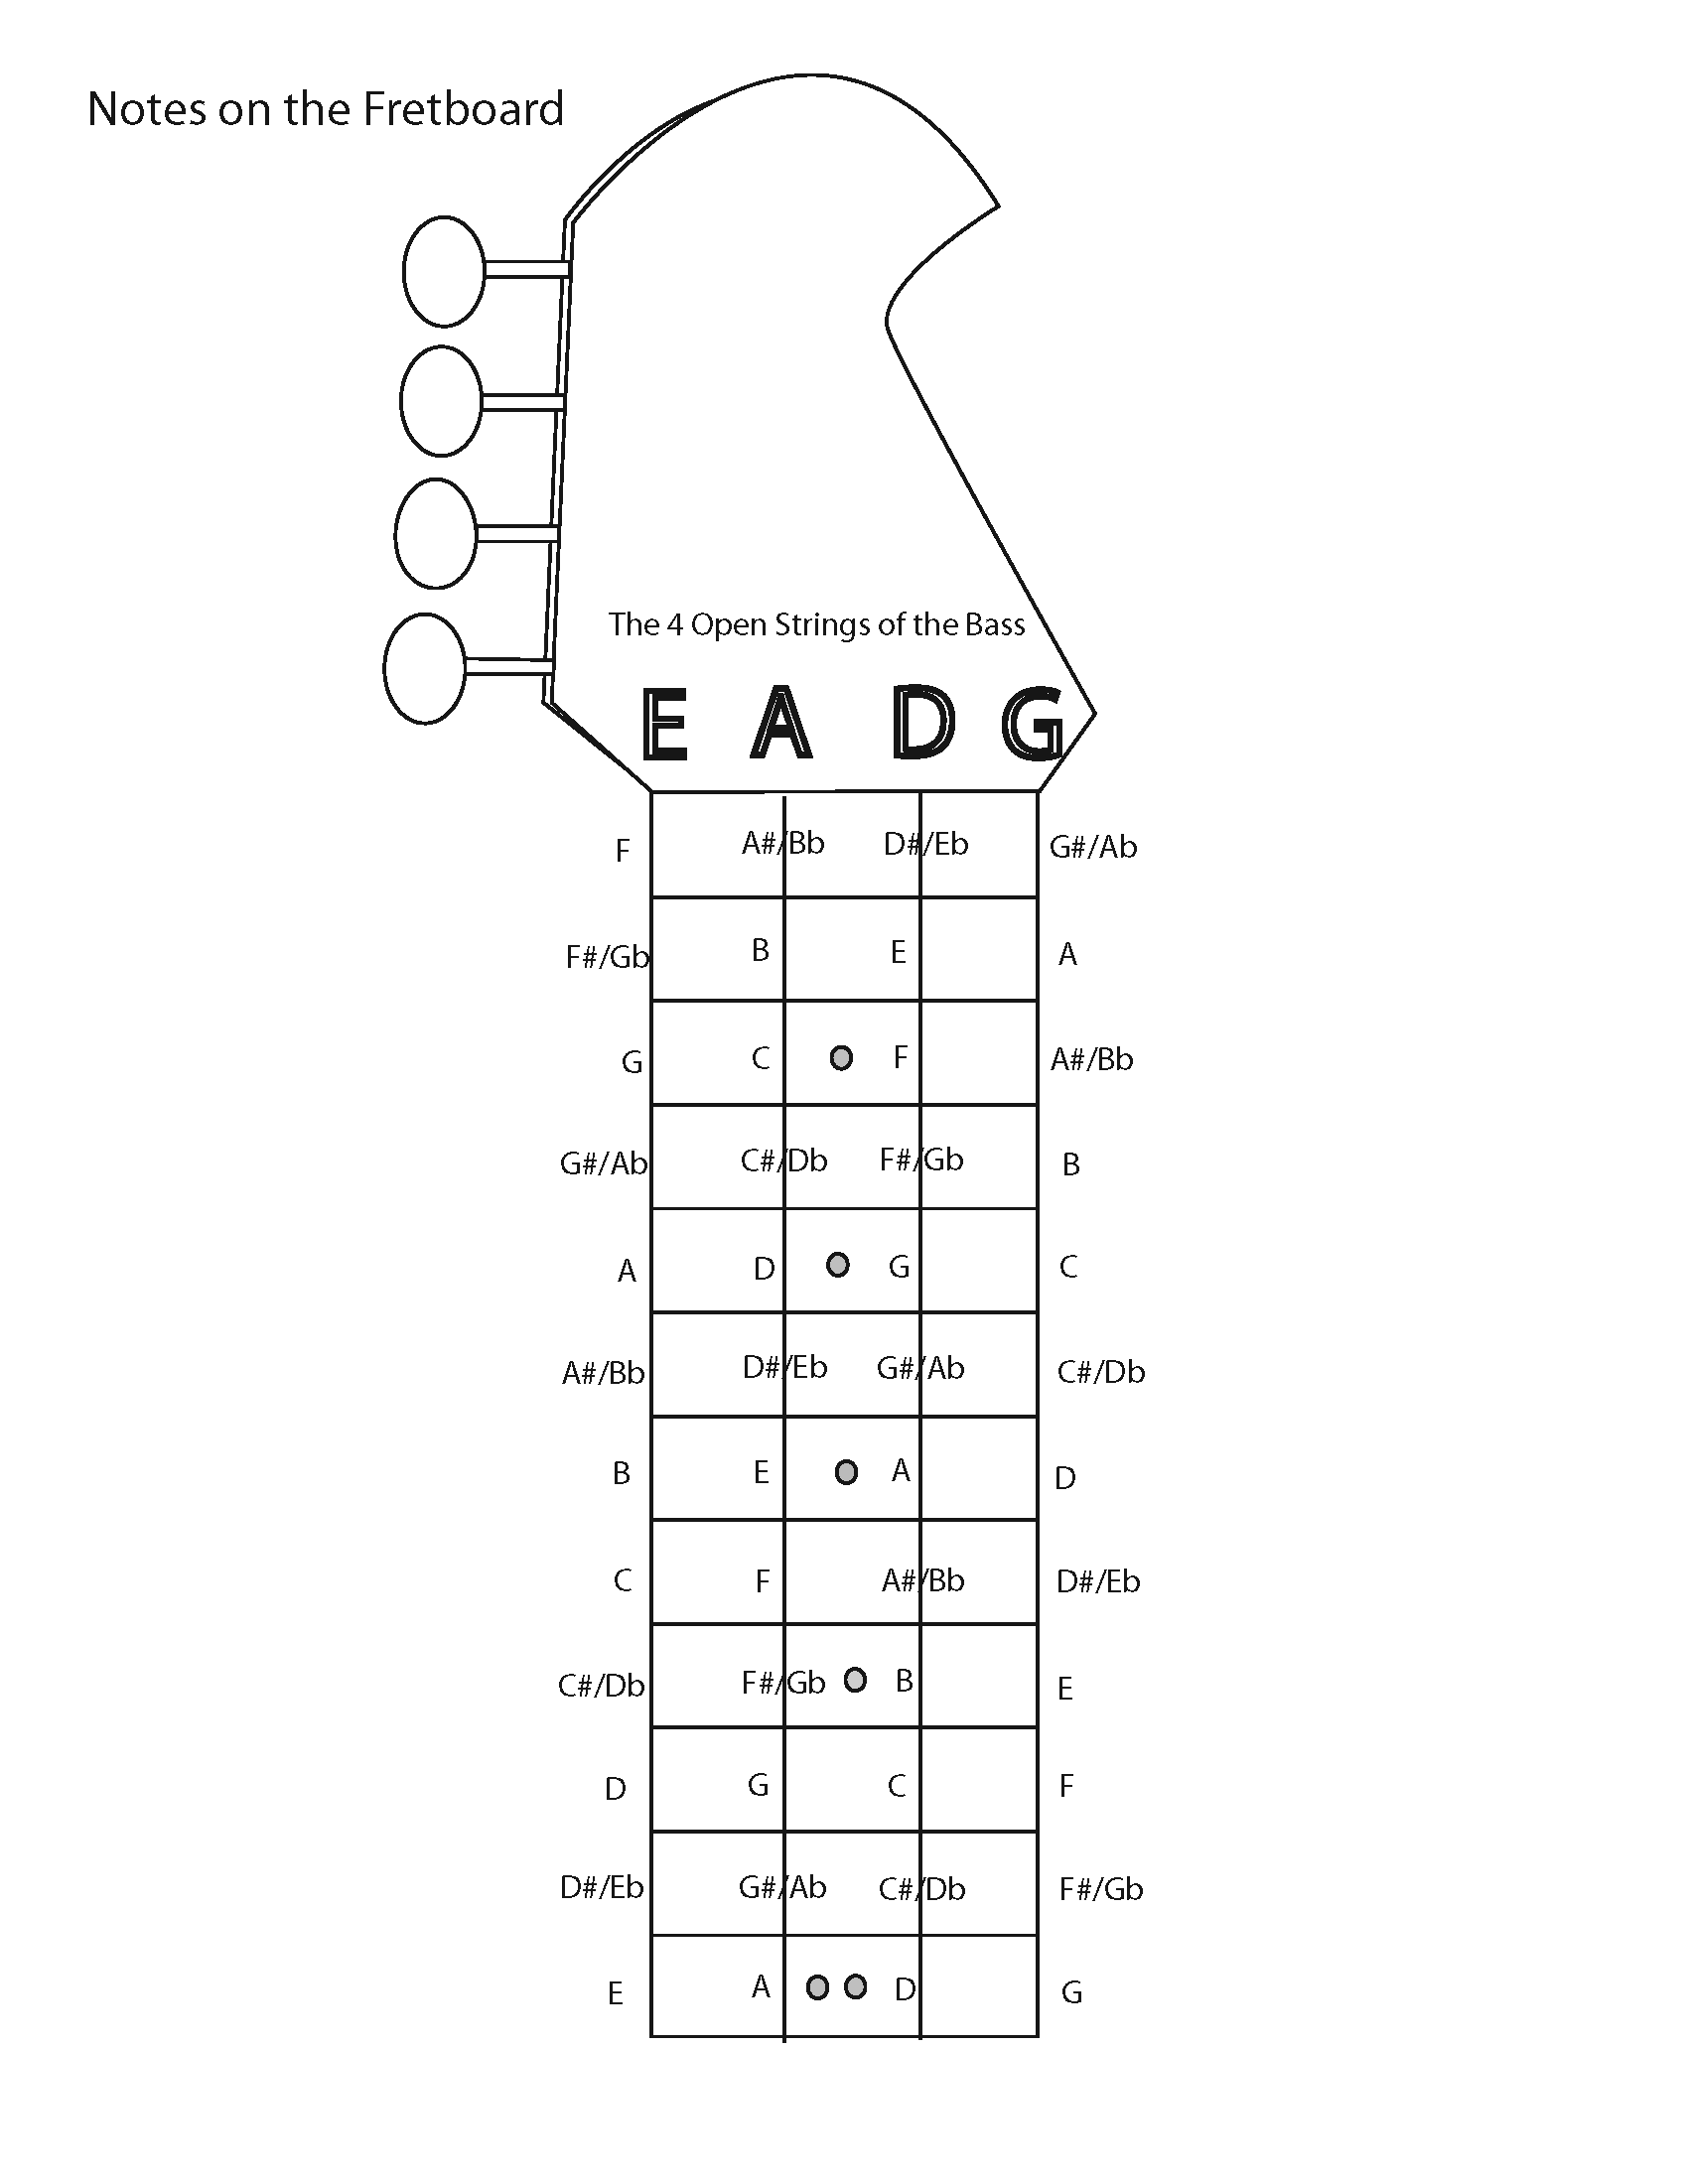 Bass Guitar Fretboard Notes Diagram Pictures To Pin On